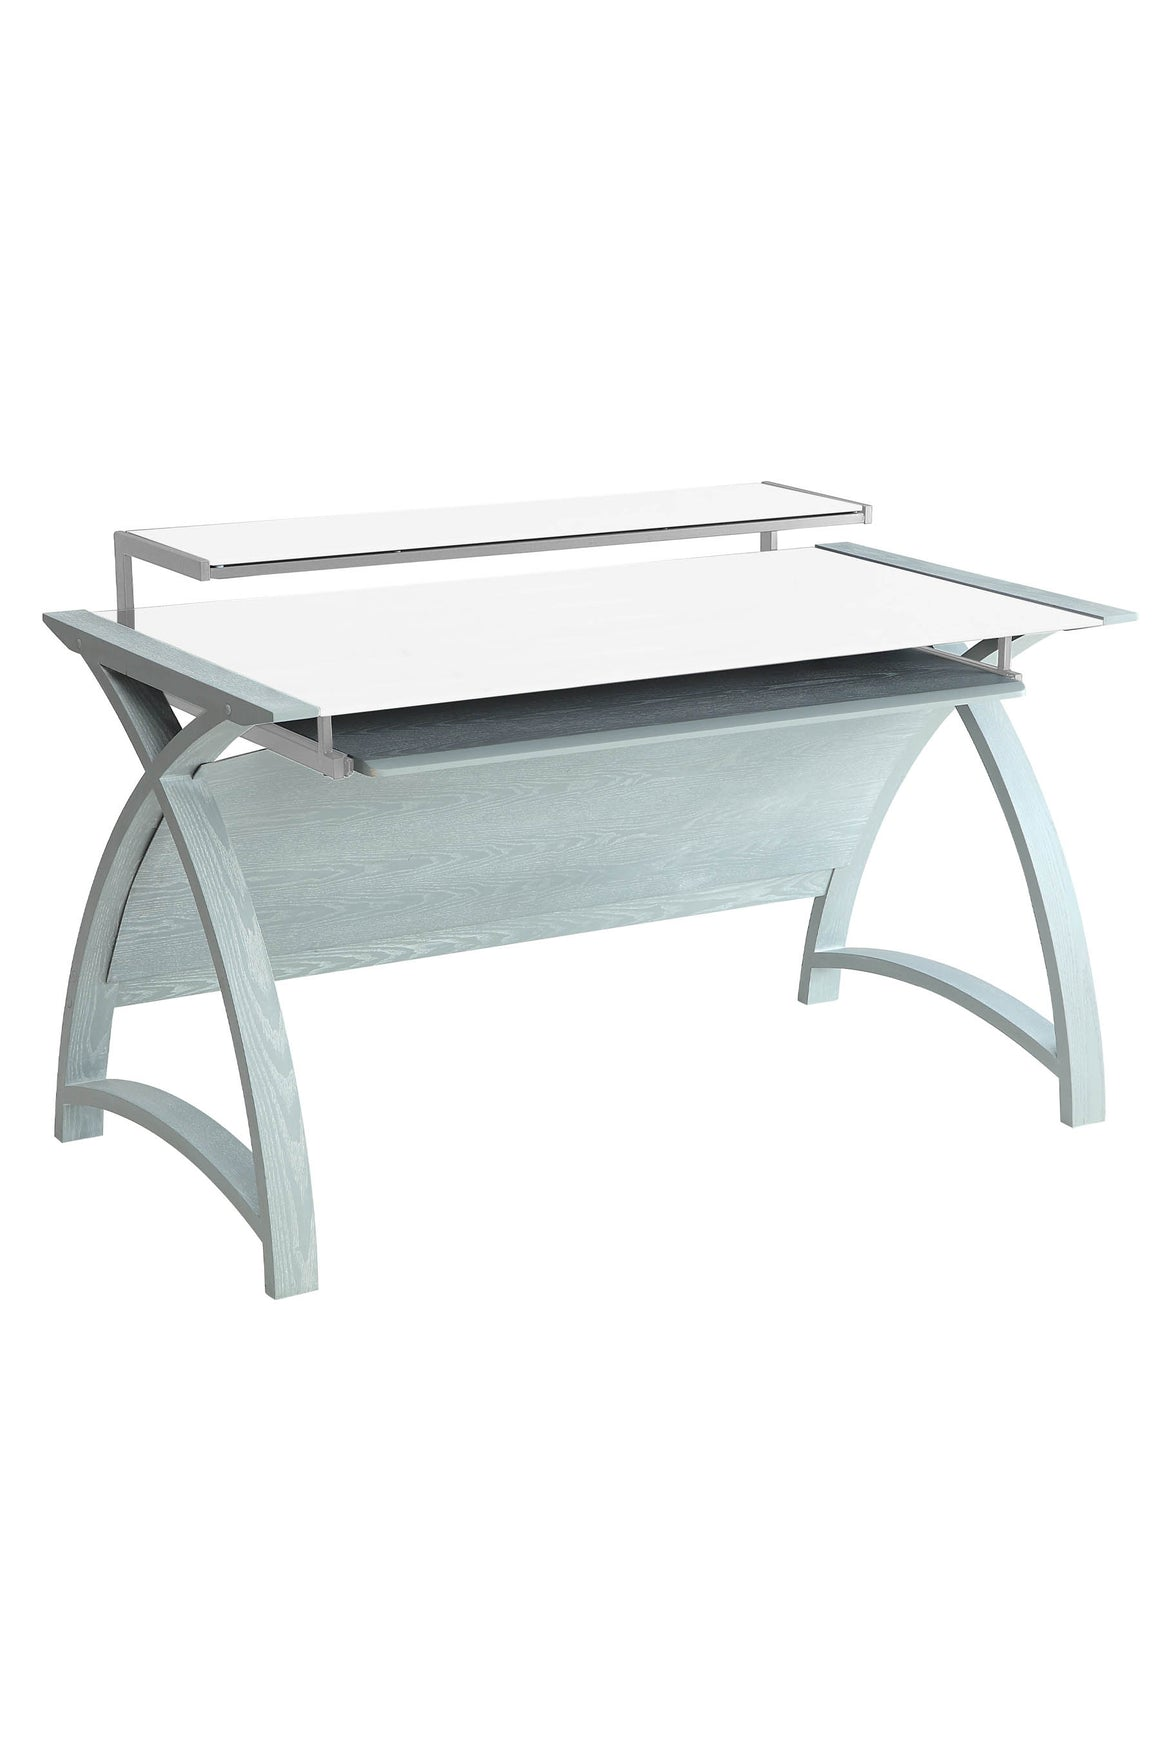 PC201 Helsinki 900 Desk (Grey) - PRE-ORDER FOR FEBRUARY DELIVERY